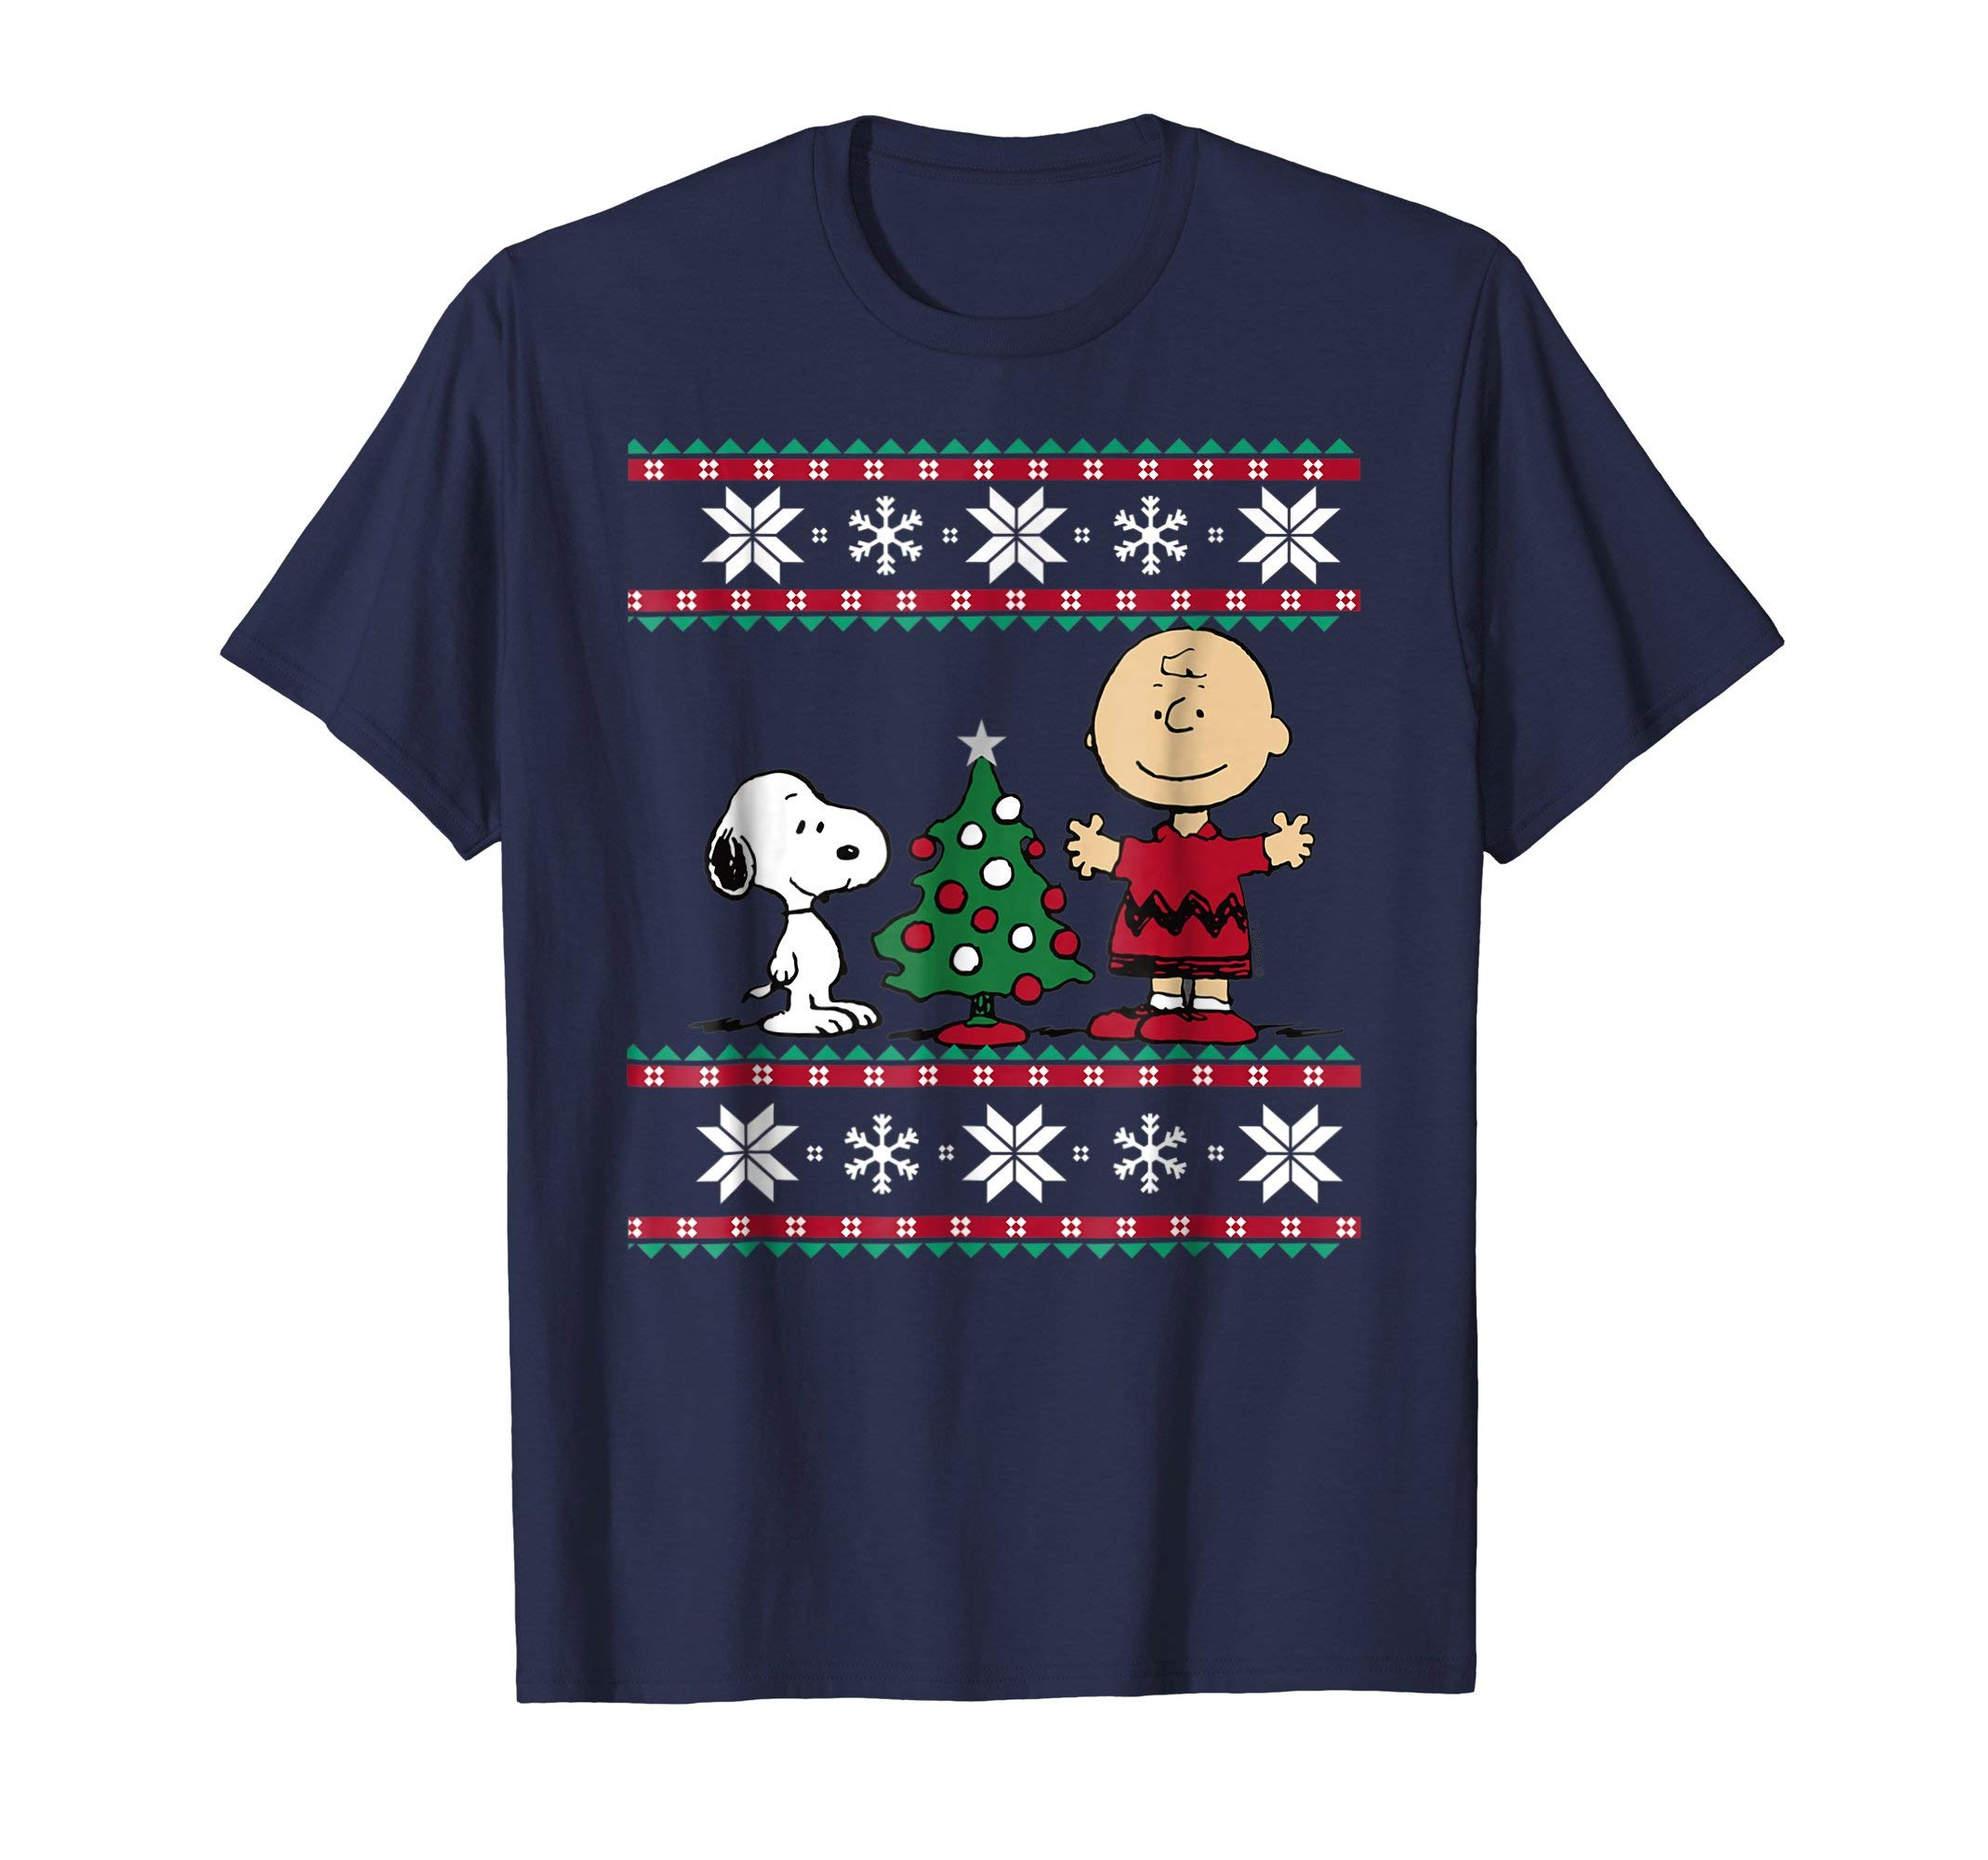 Image of Charlie Brown and Snoopy Christmas T-shirt for Adults and Kids - See More Colors